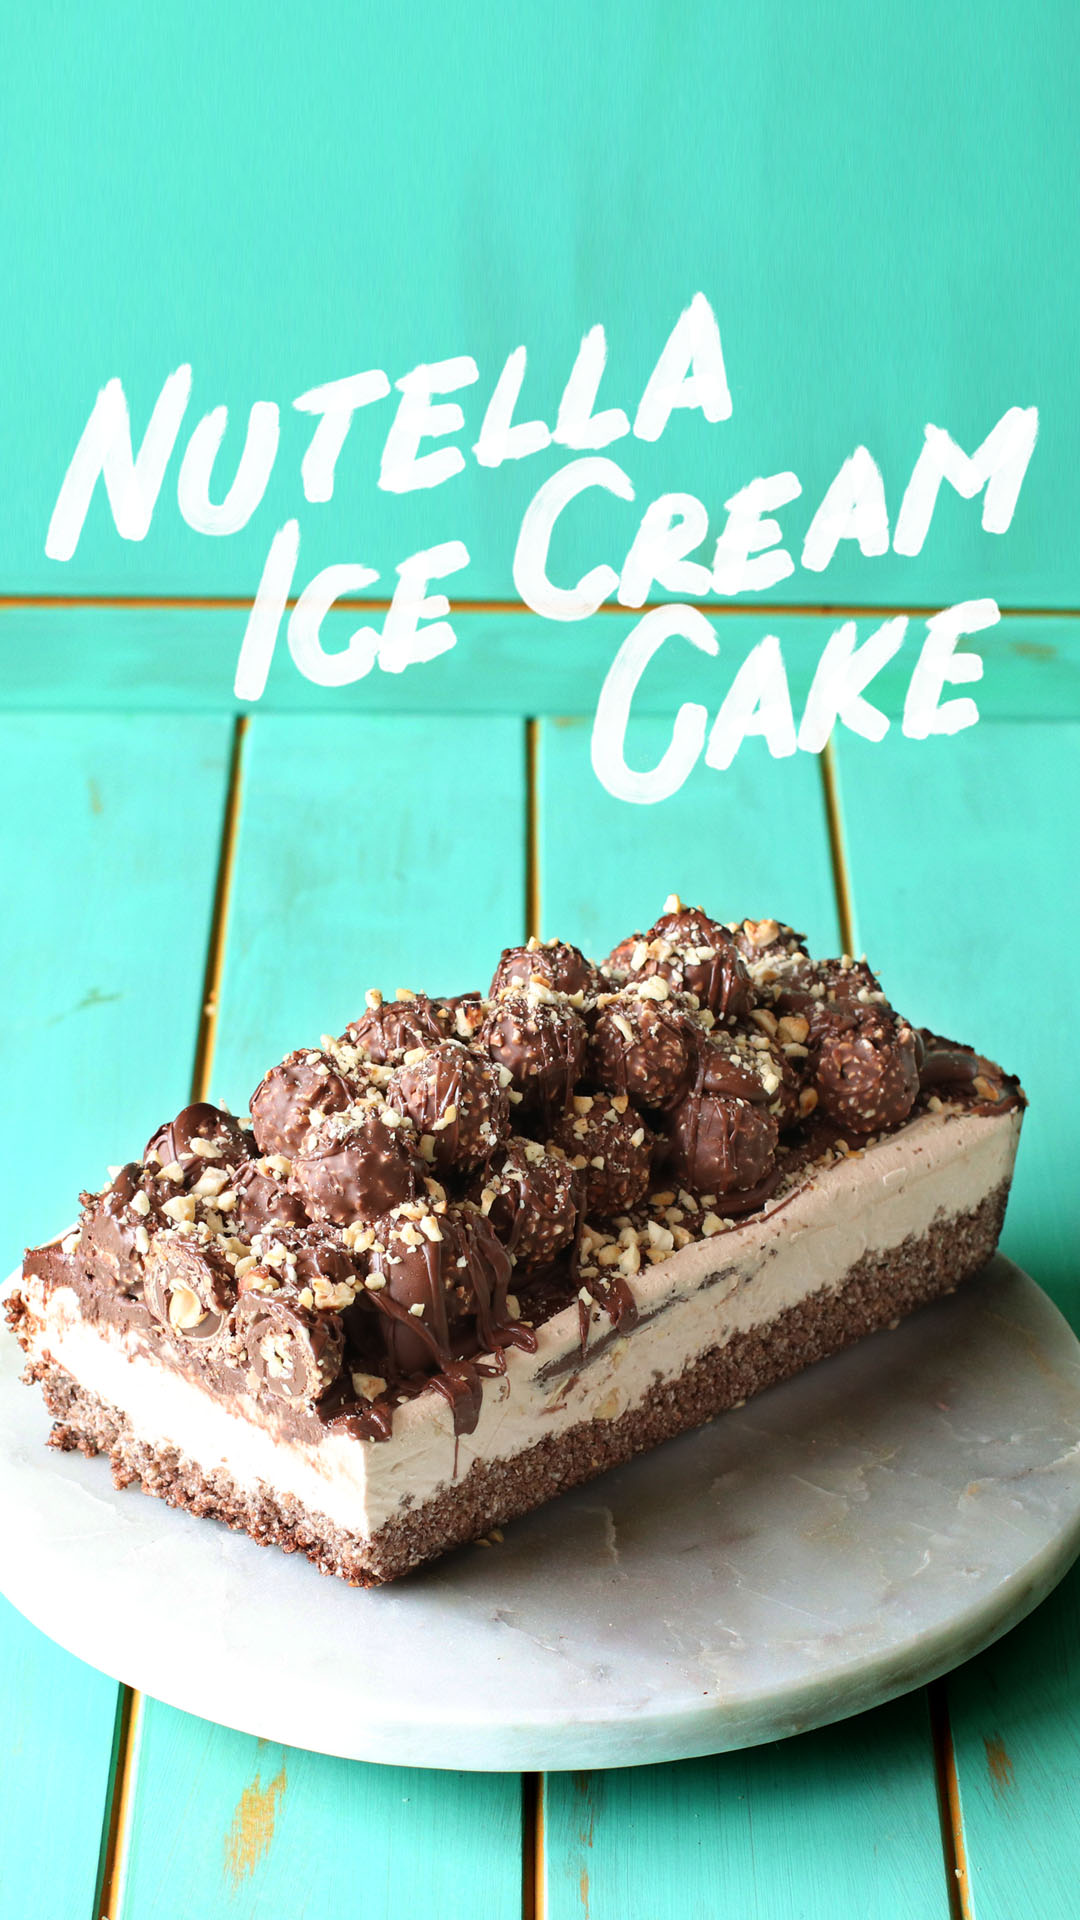 Nutella Ice Cream Cake The Scran Line Tastemade Go Box Of 12